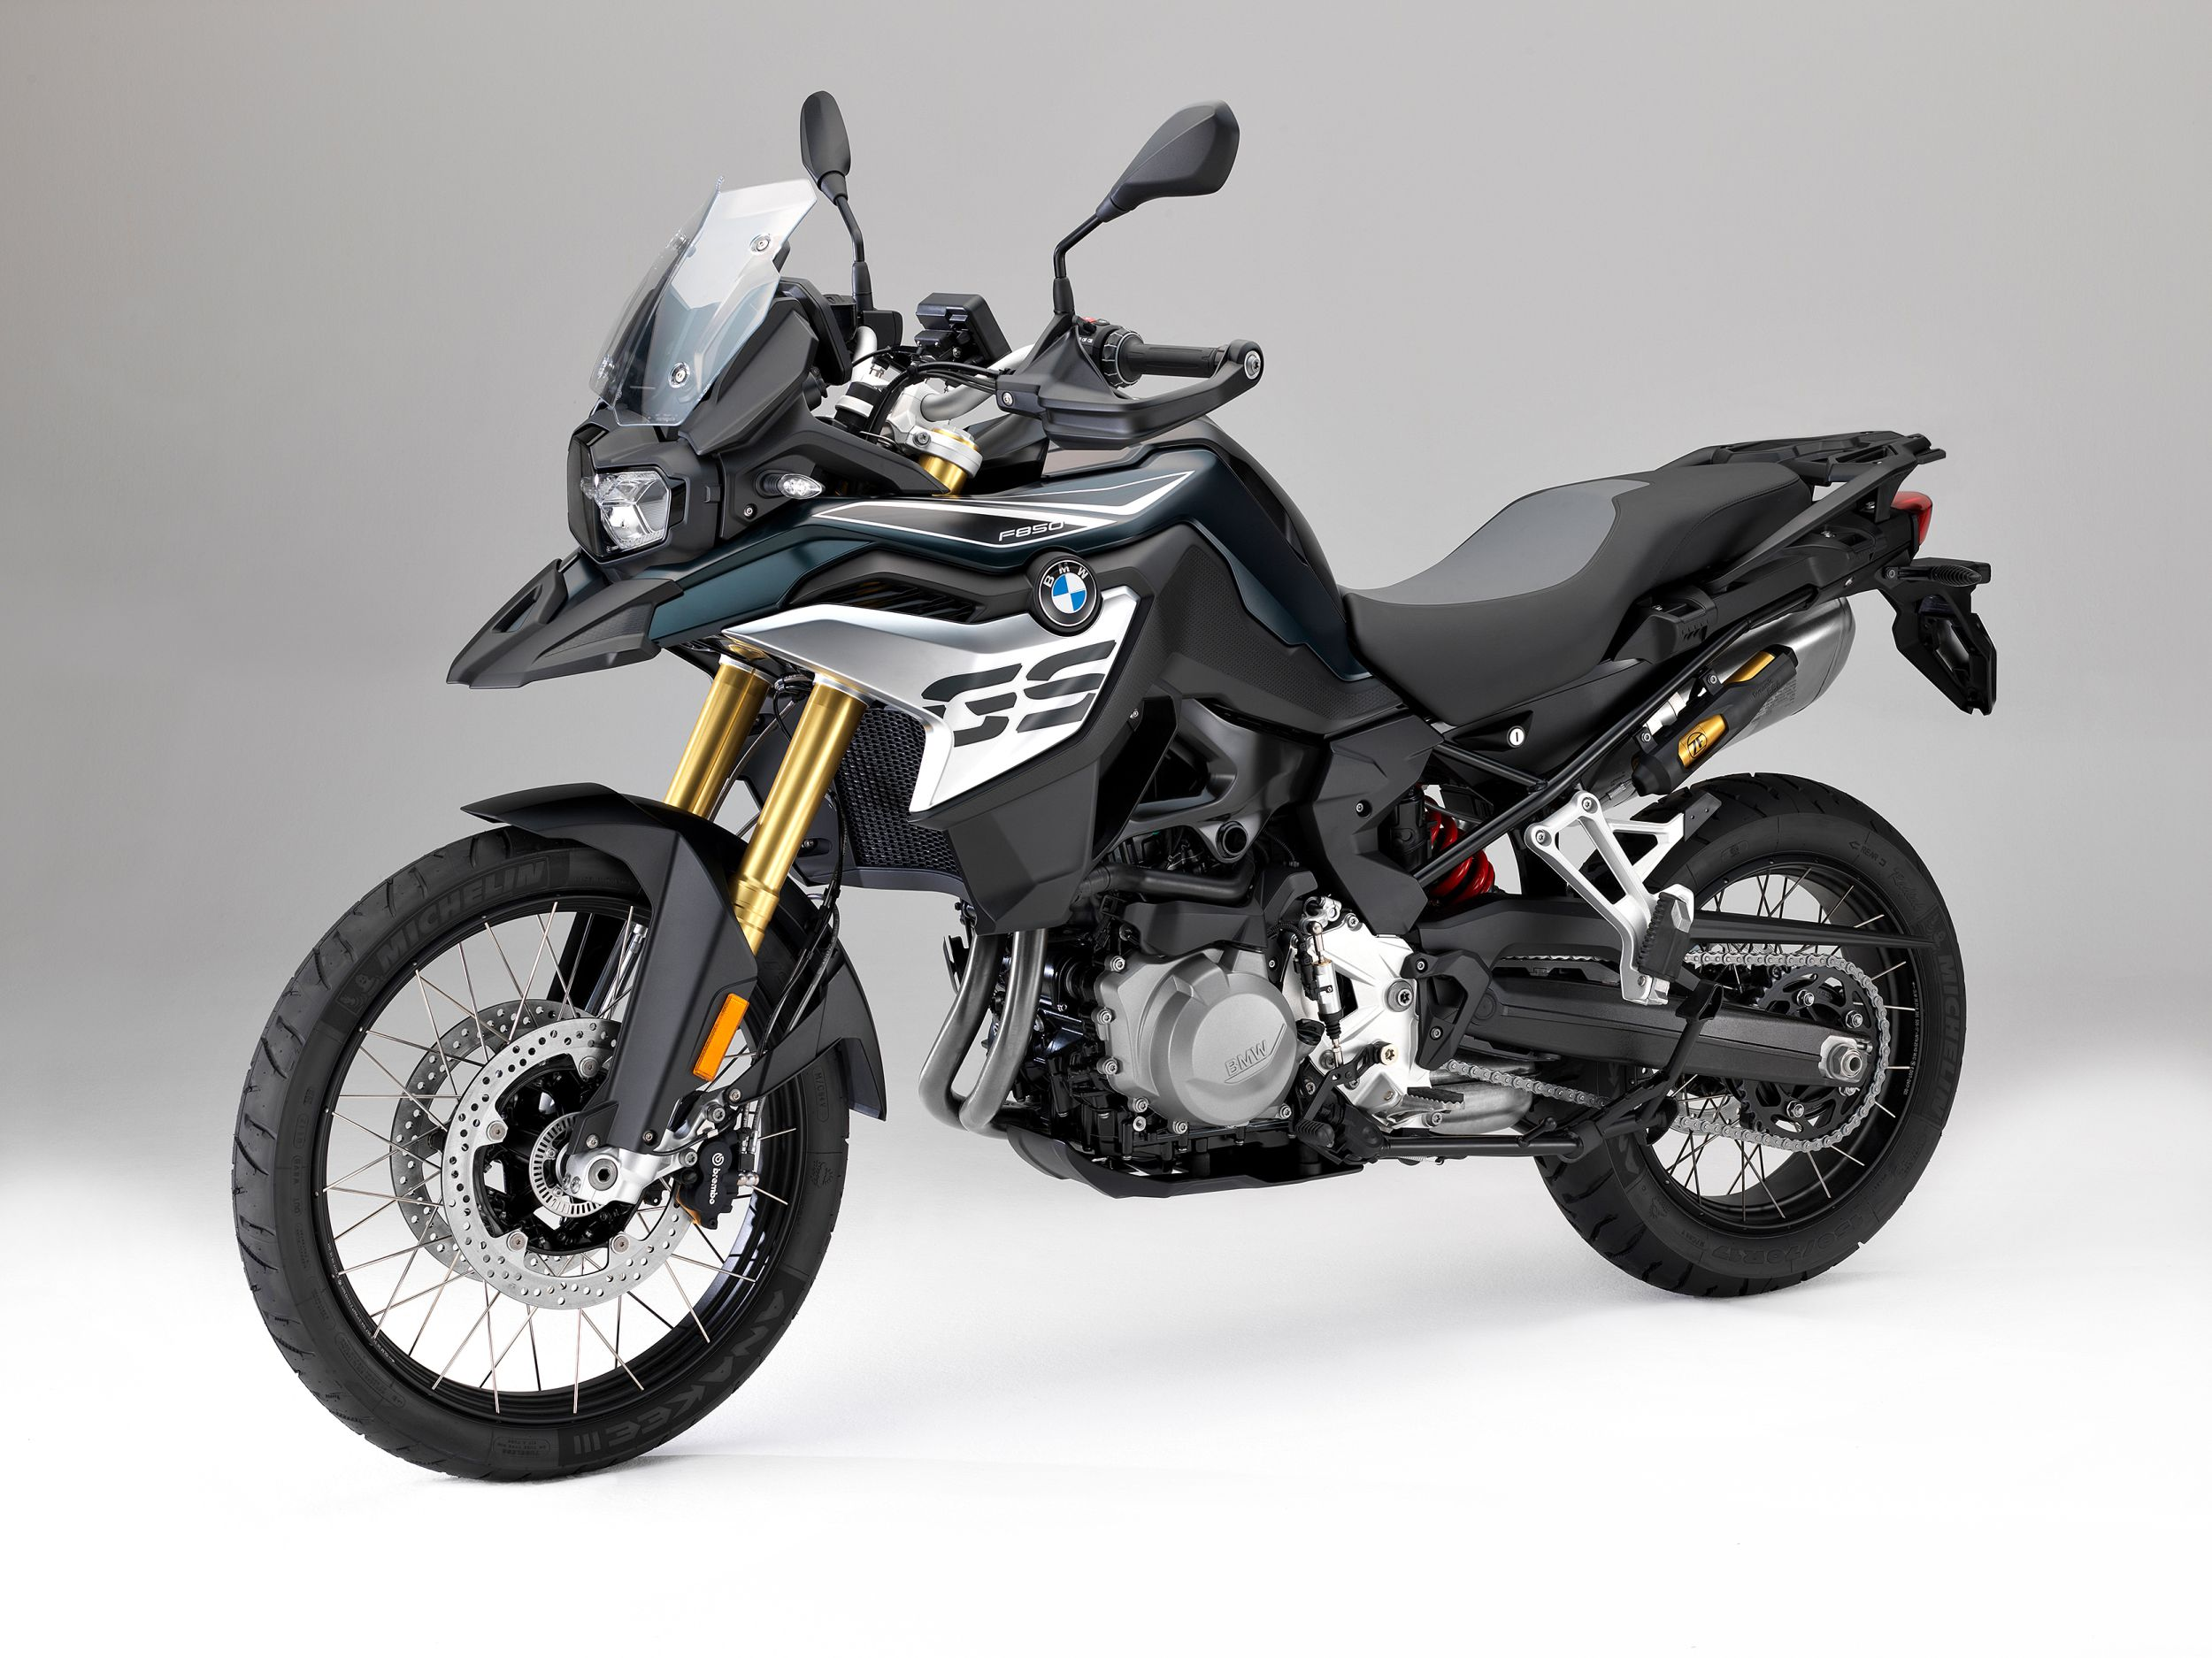 motorrad occasion bmw f 850 gs kaufen. Black Bedroom Furniture Sets. Home Design Ideas